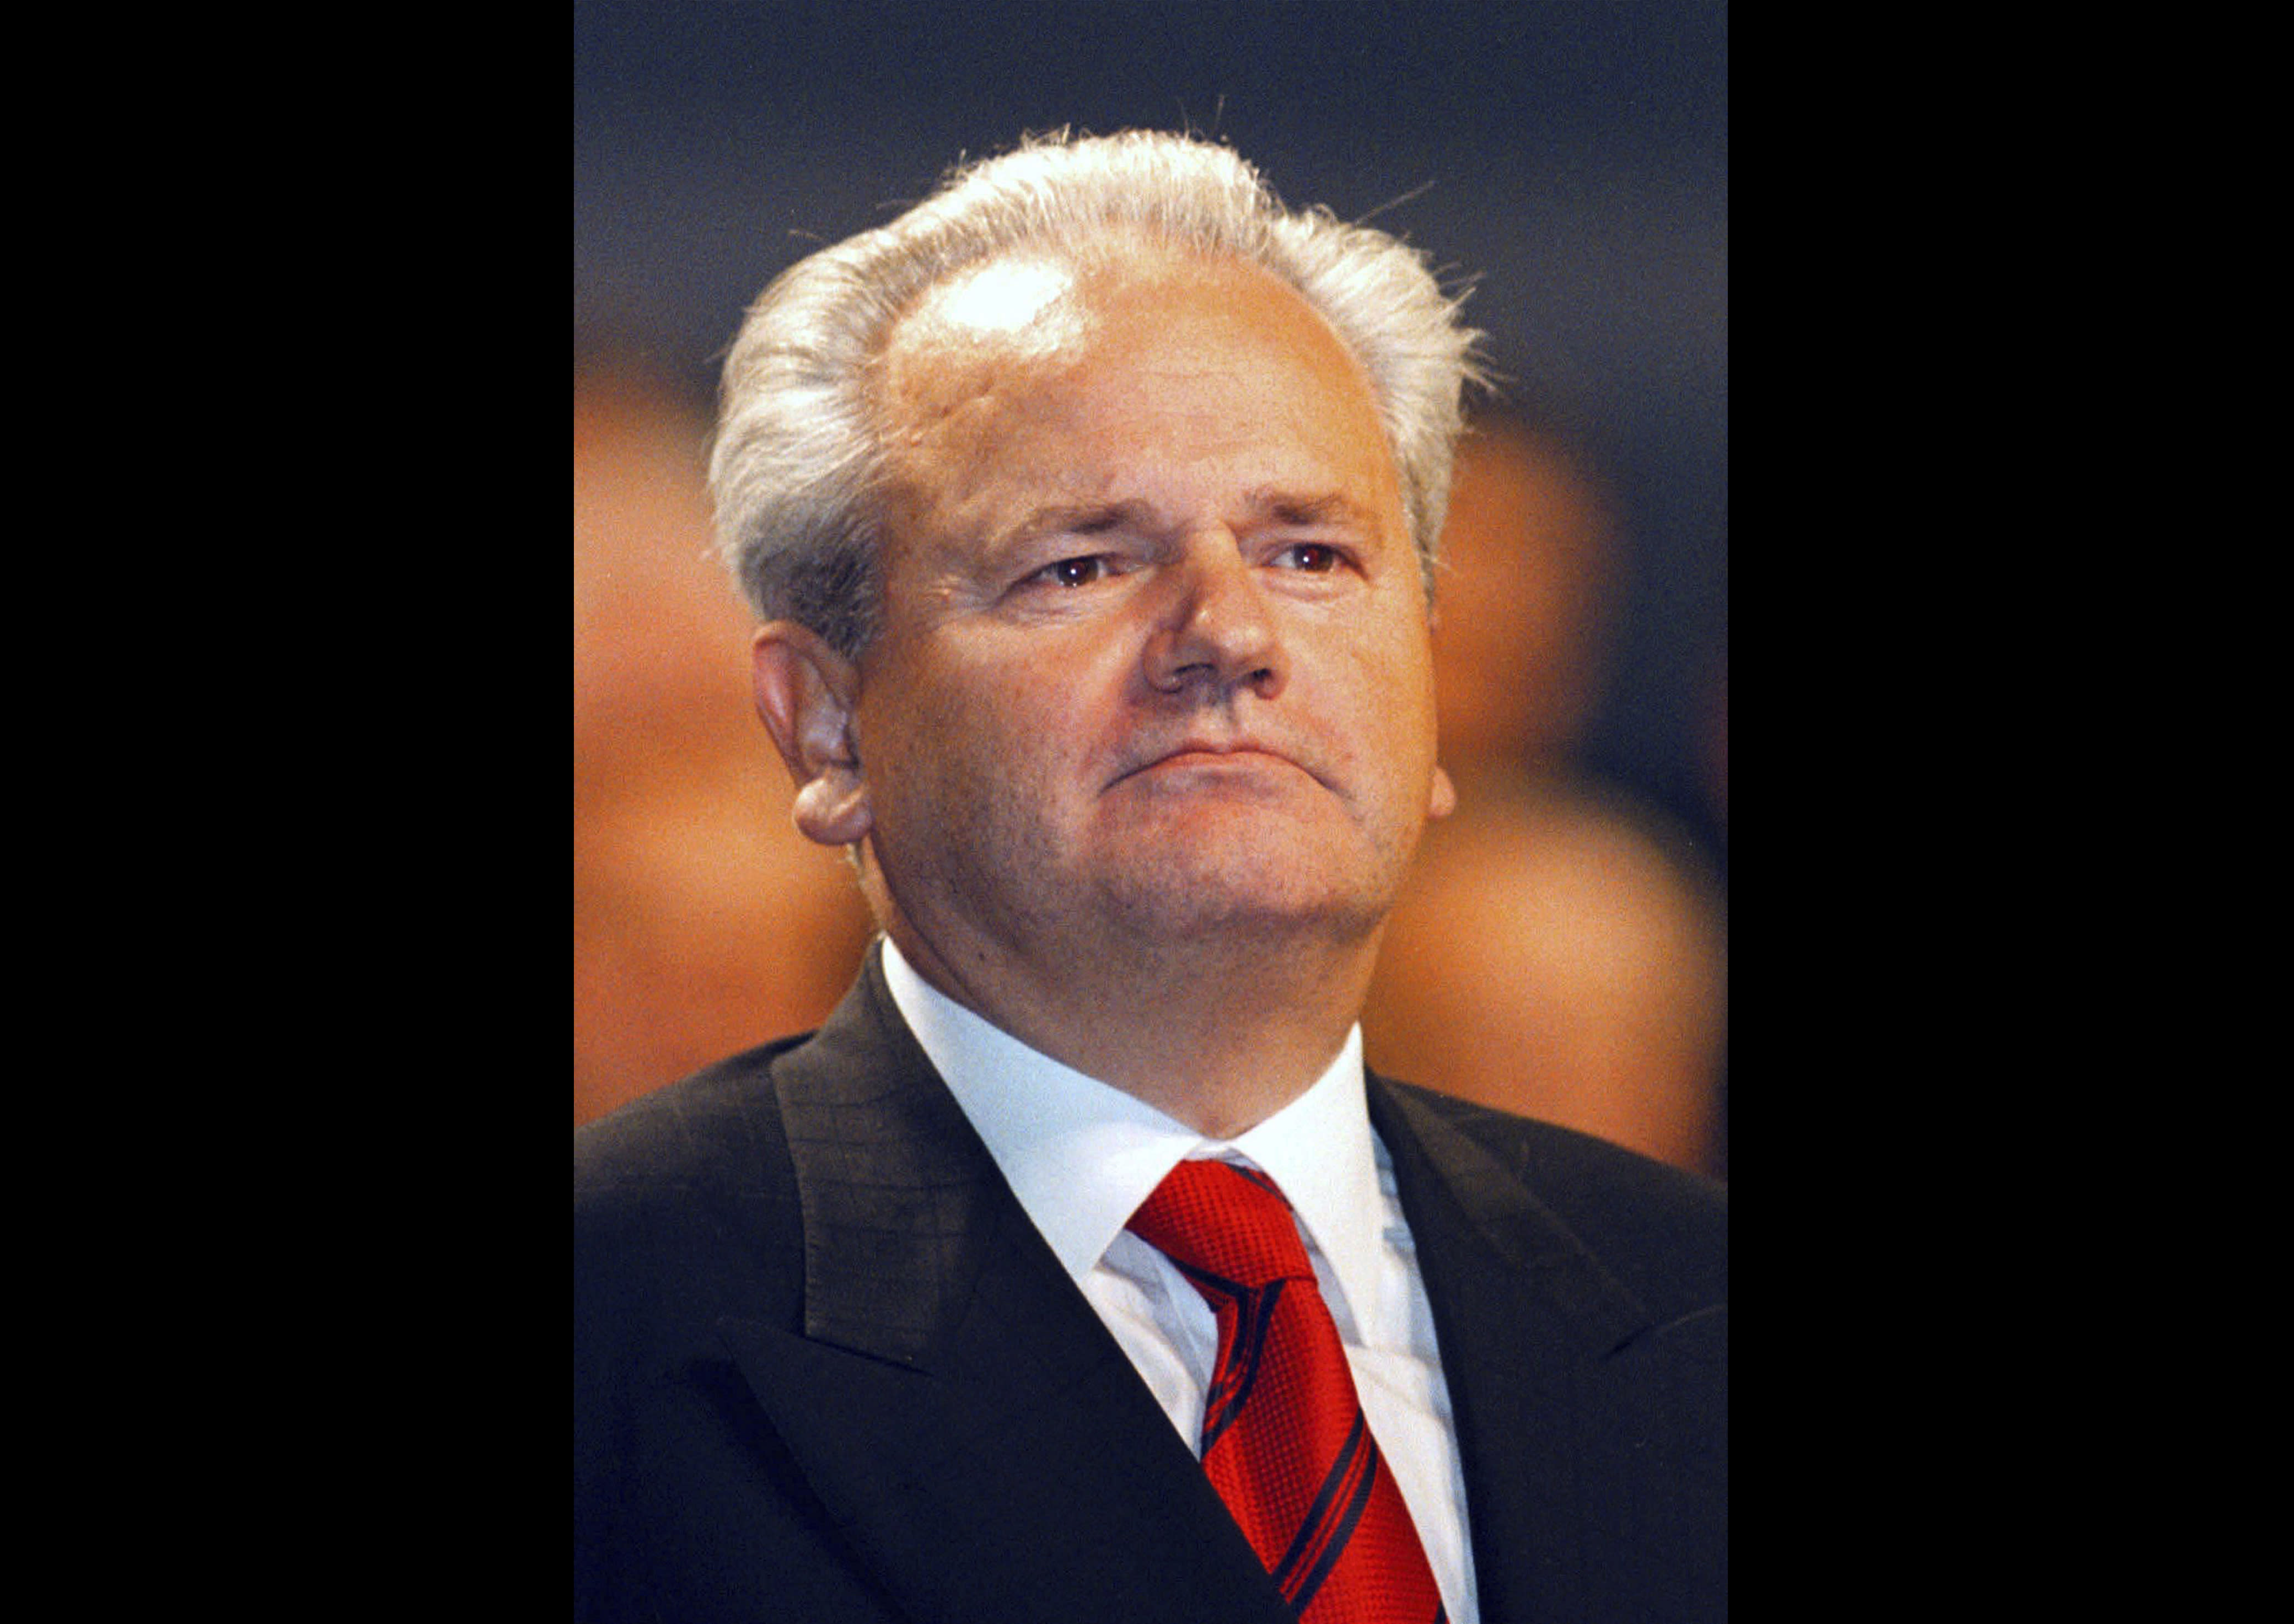 Serbian president's praise of Milosevic triggers outrage